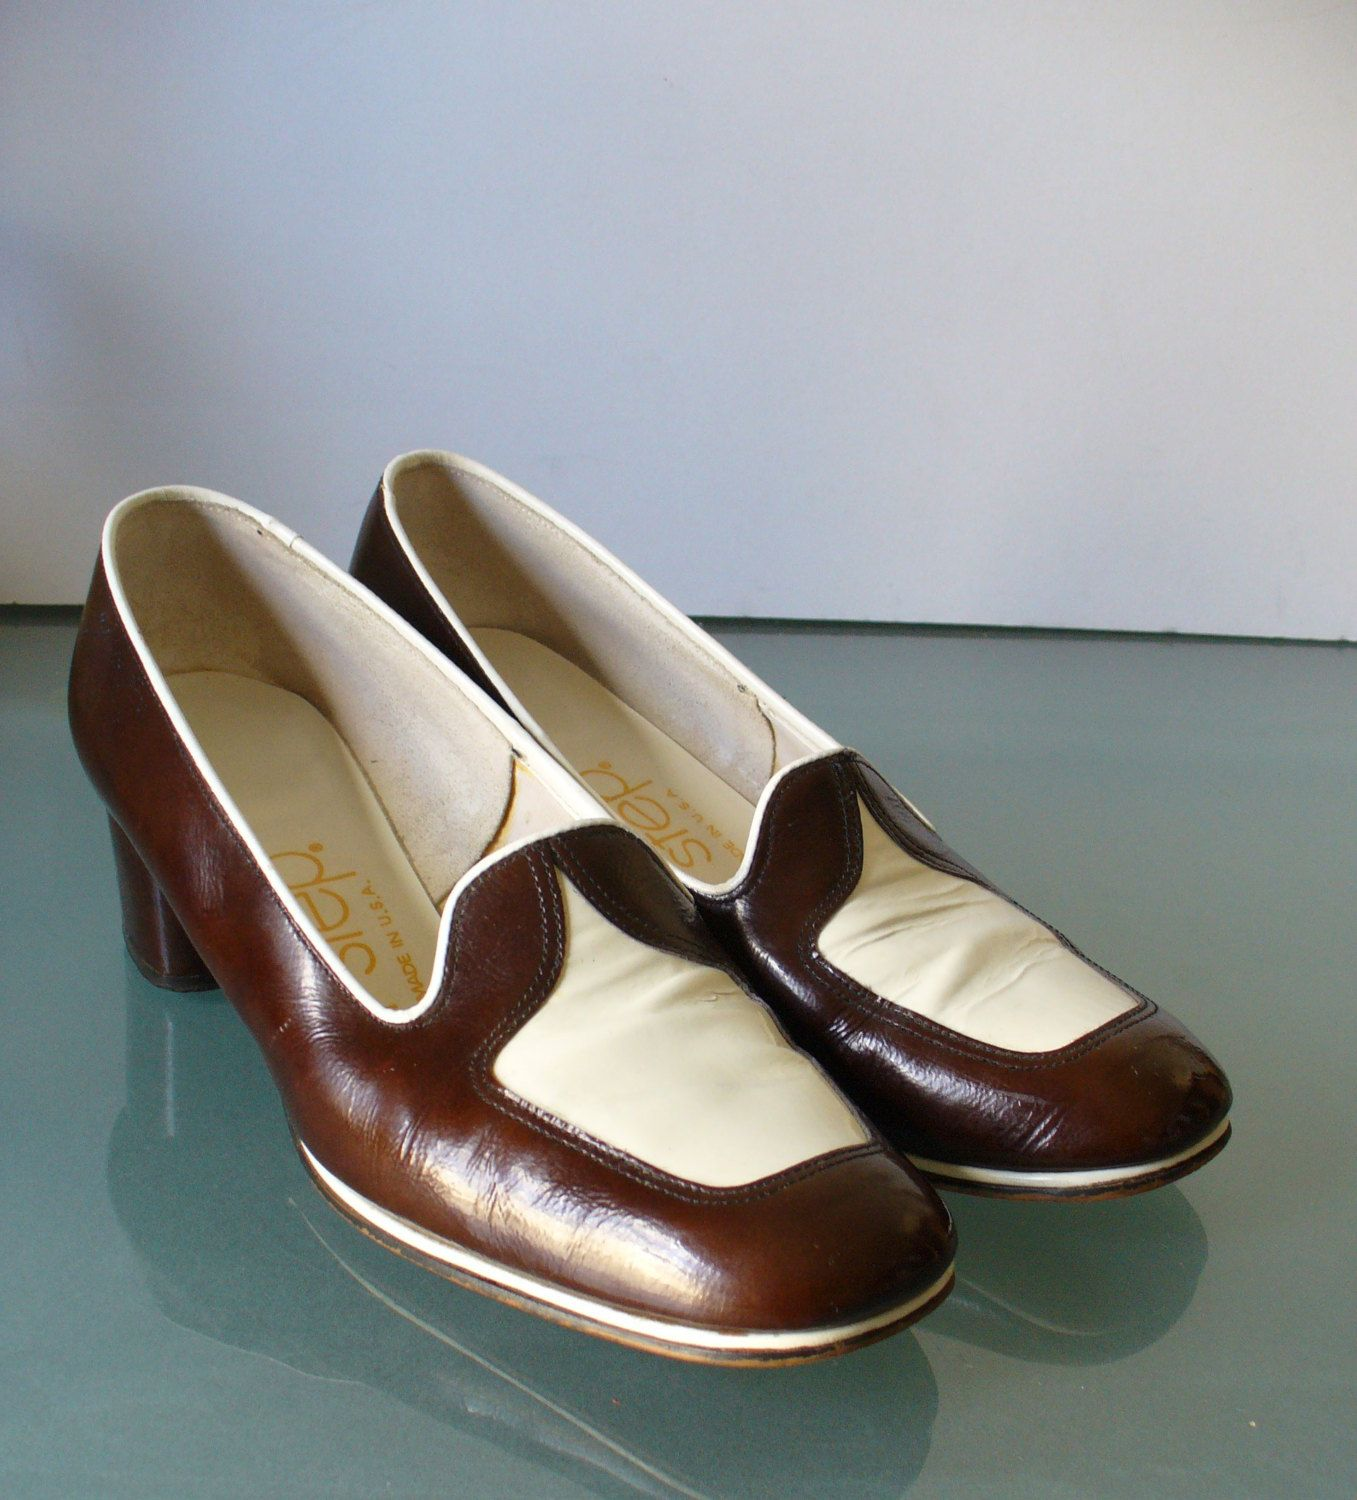 426c9dd5d40 Vintage Air Step Spectator Pumps Size 5.5 US by TheOldBagOnline on ...